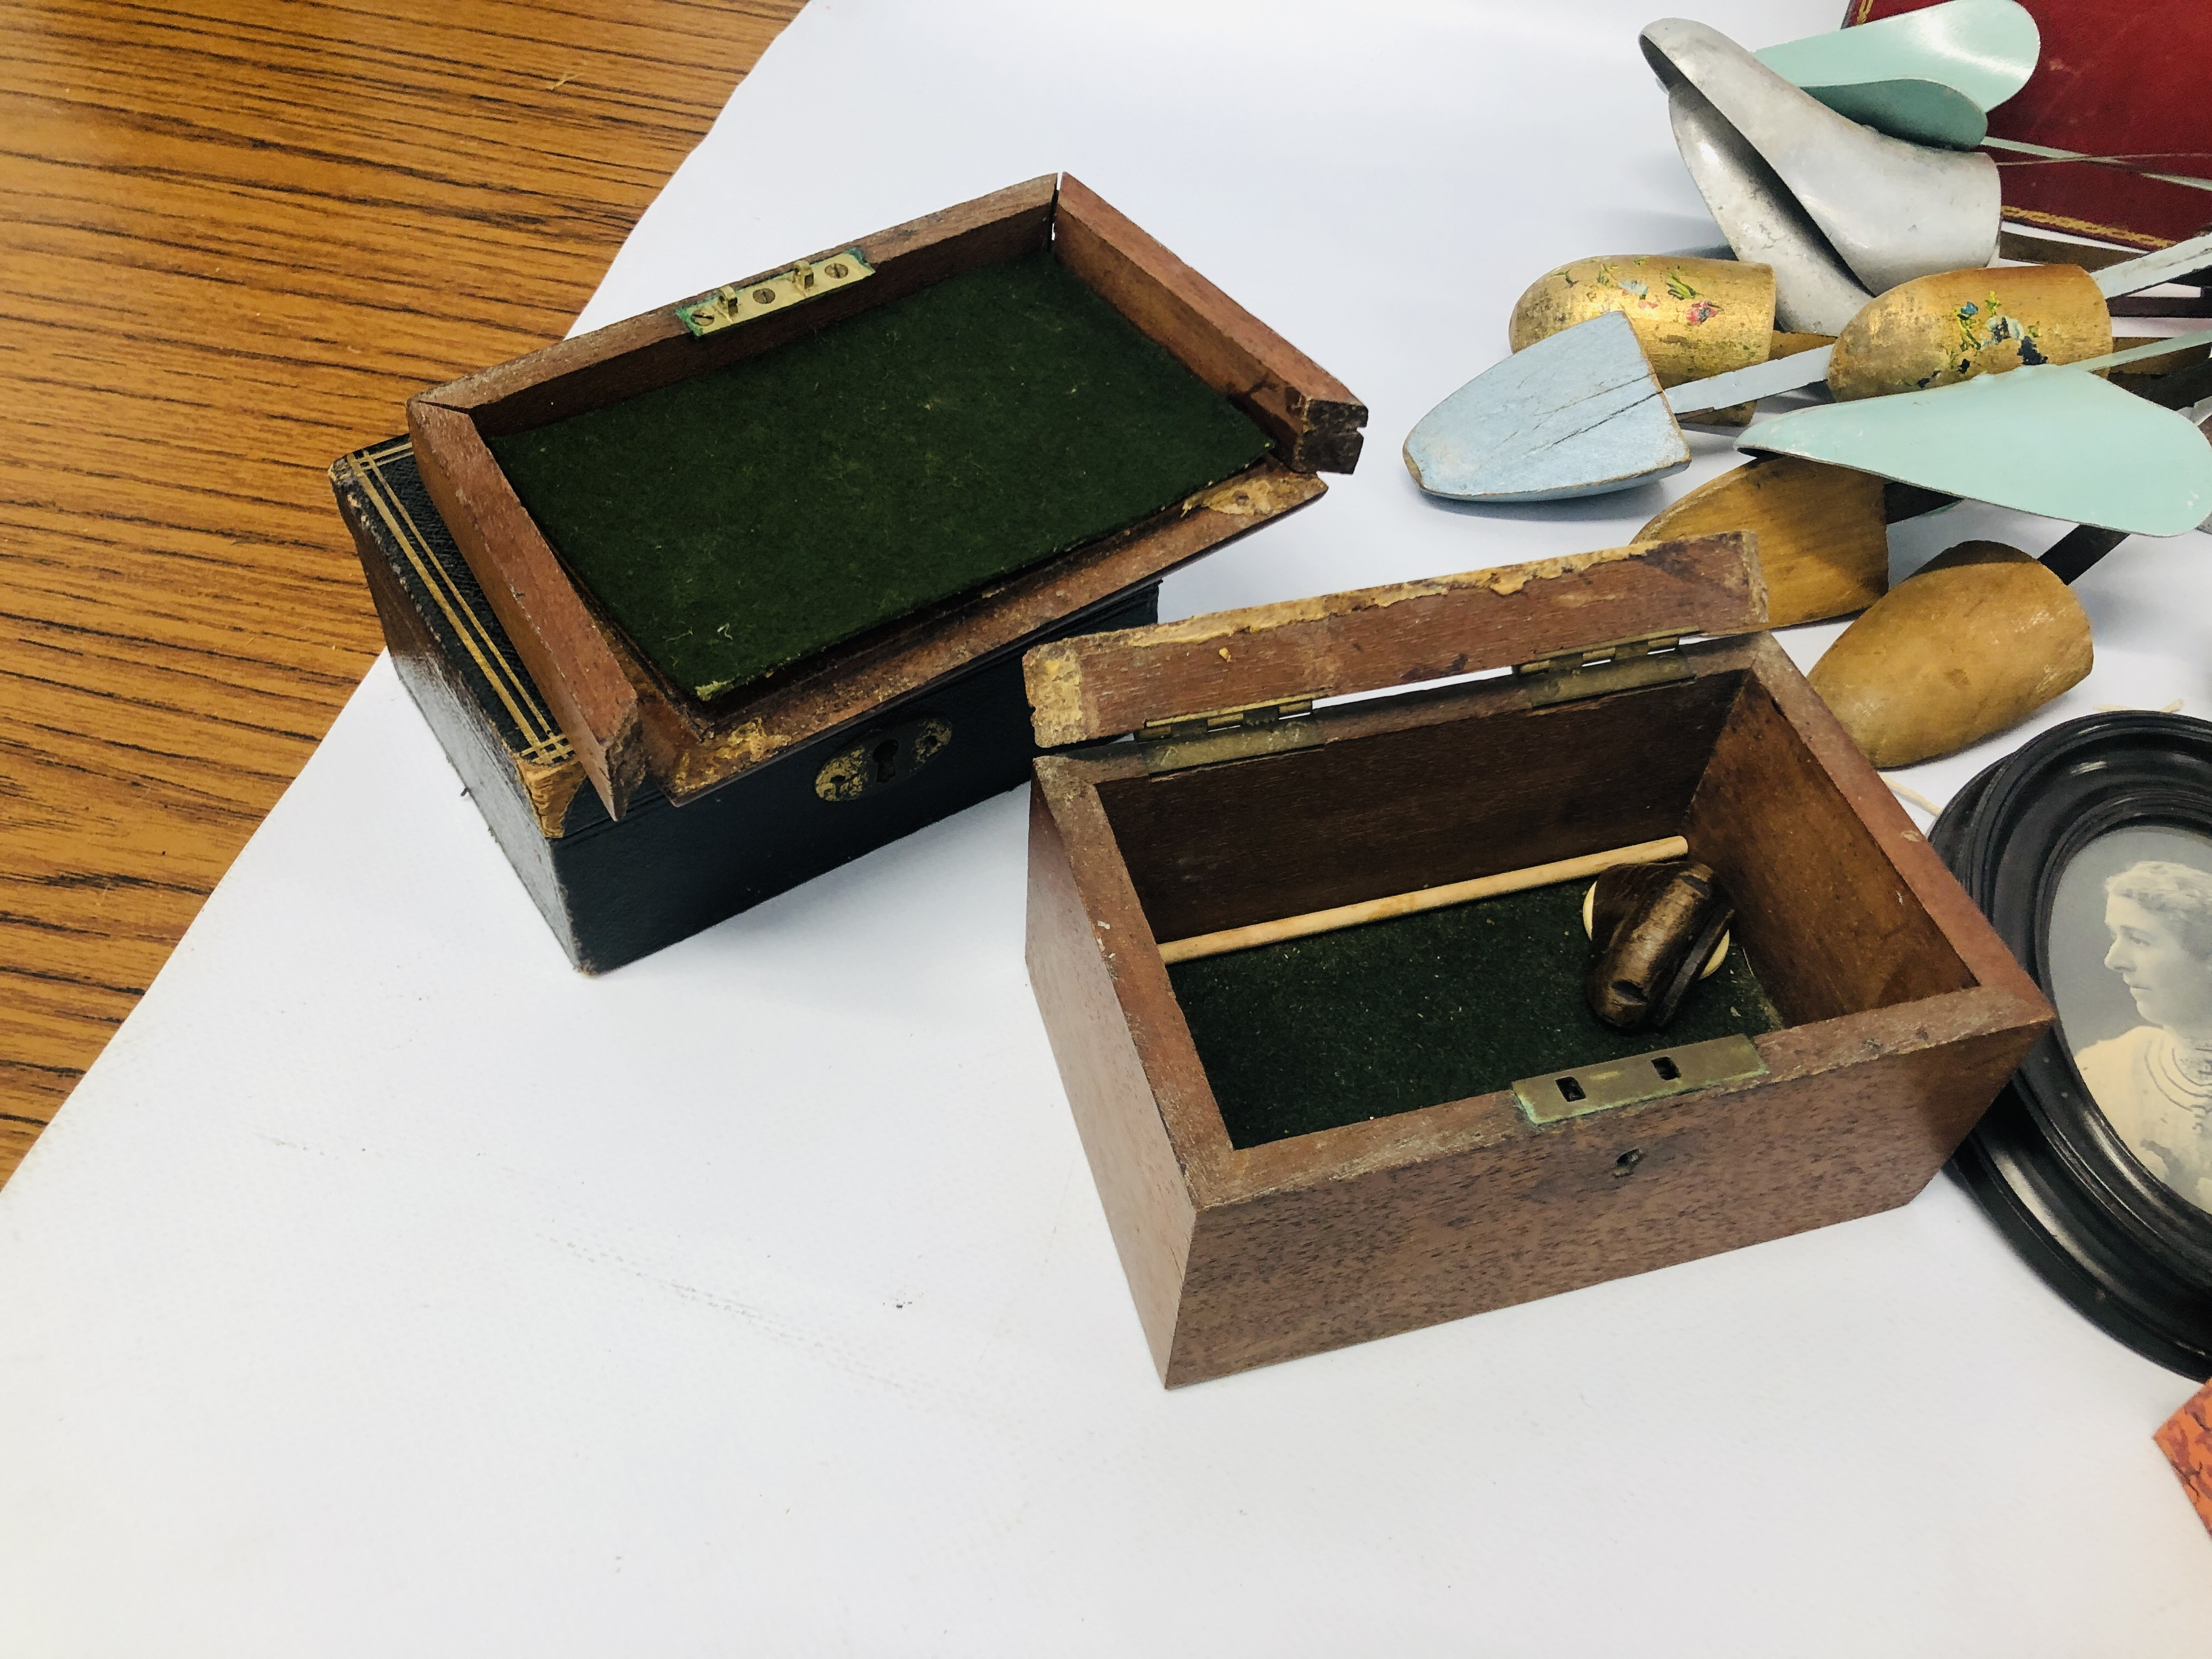 BOX OF ASSORTED VINTAGE COLLECTABLE'S TO INCLUDE MAHOGANY TEA CADDY, GAMES MIRRORS, HANGERS, - Image 12 of 12